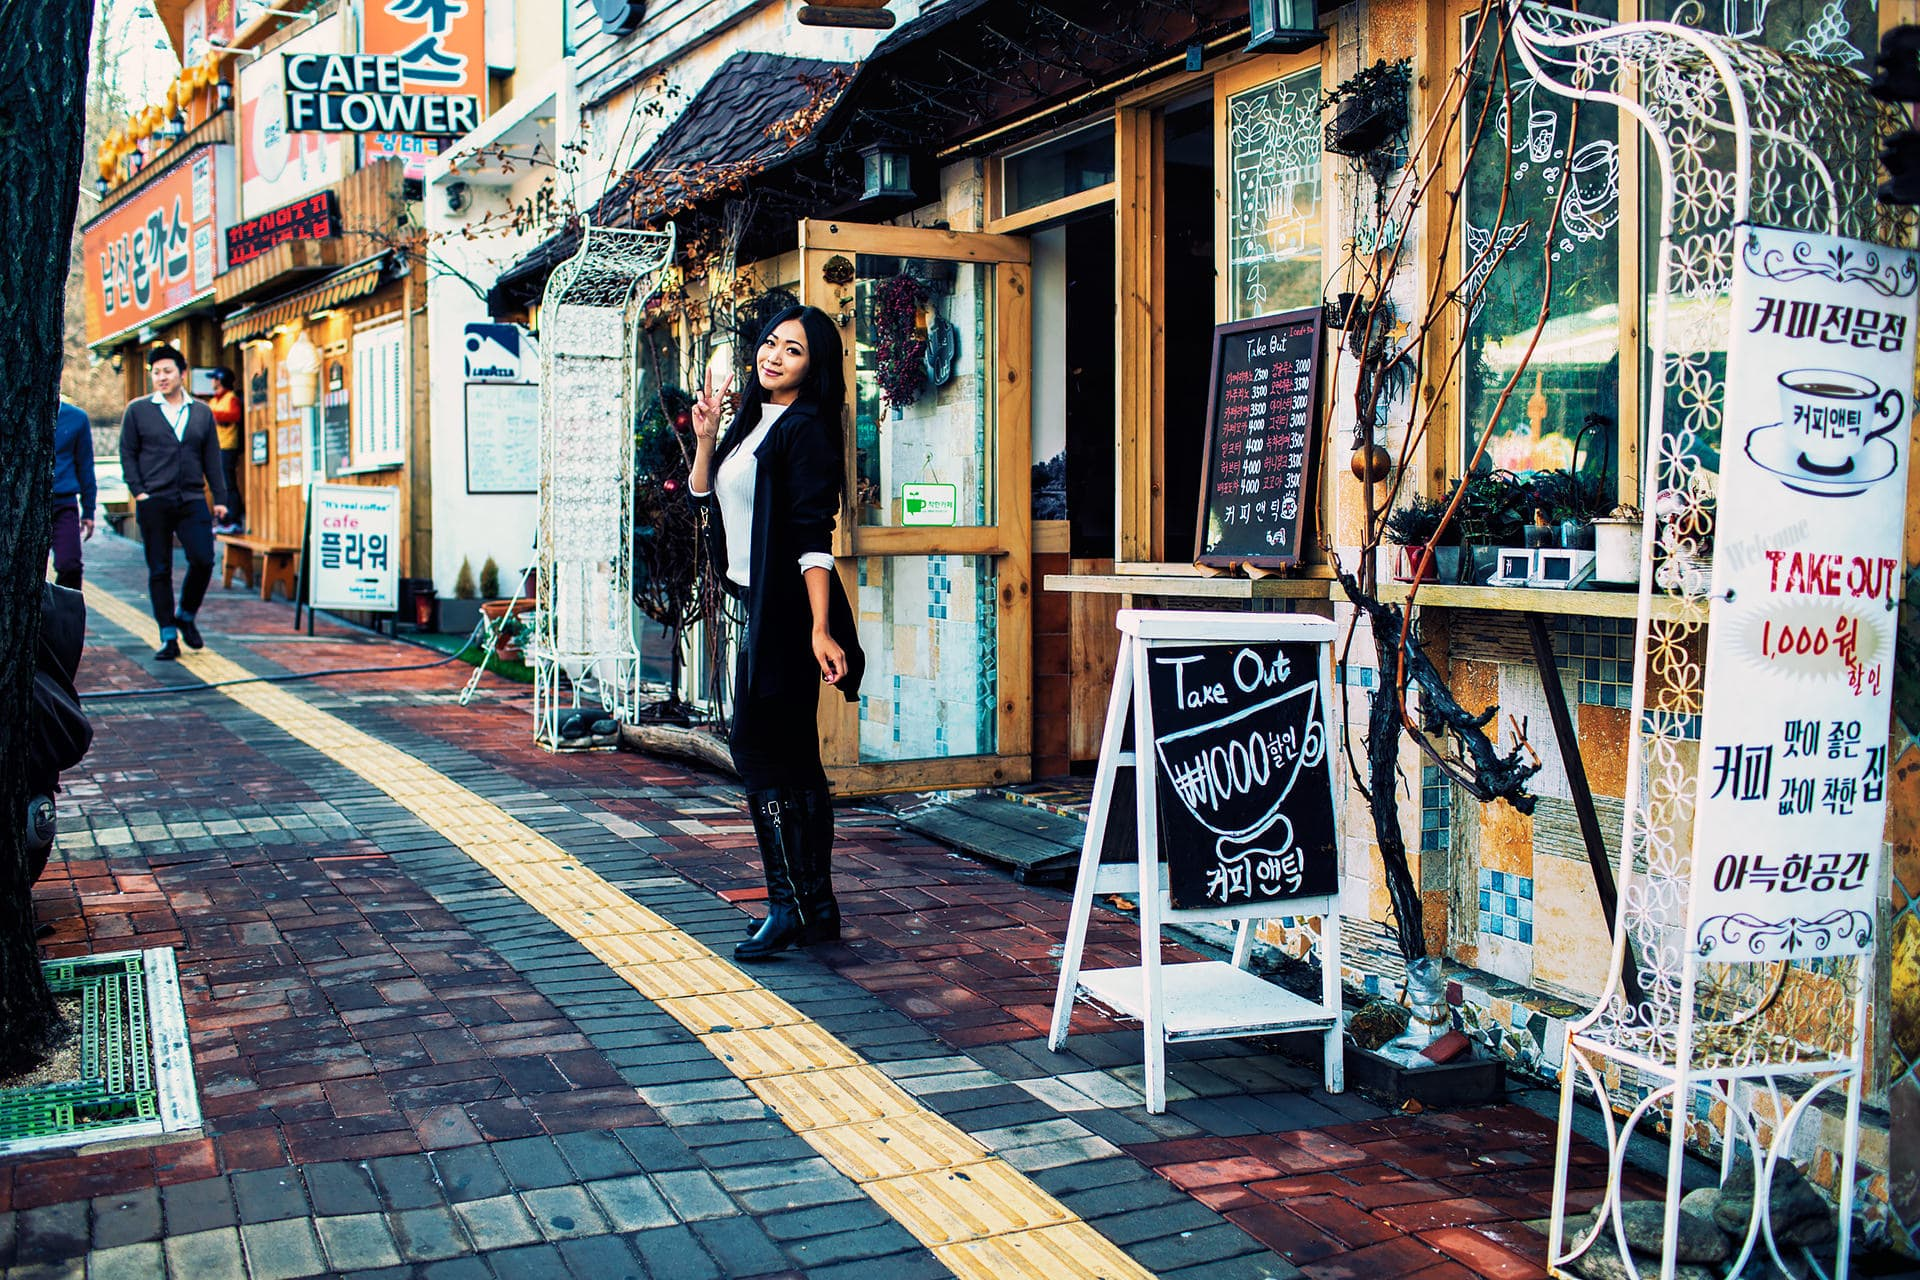 Cute Cafe near N Seoul Tower in South Korea